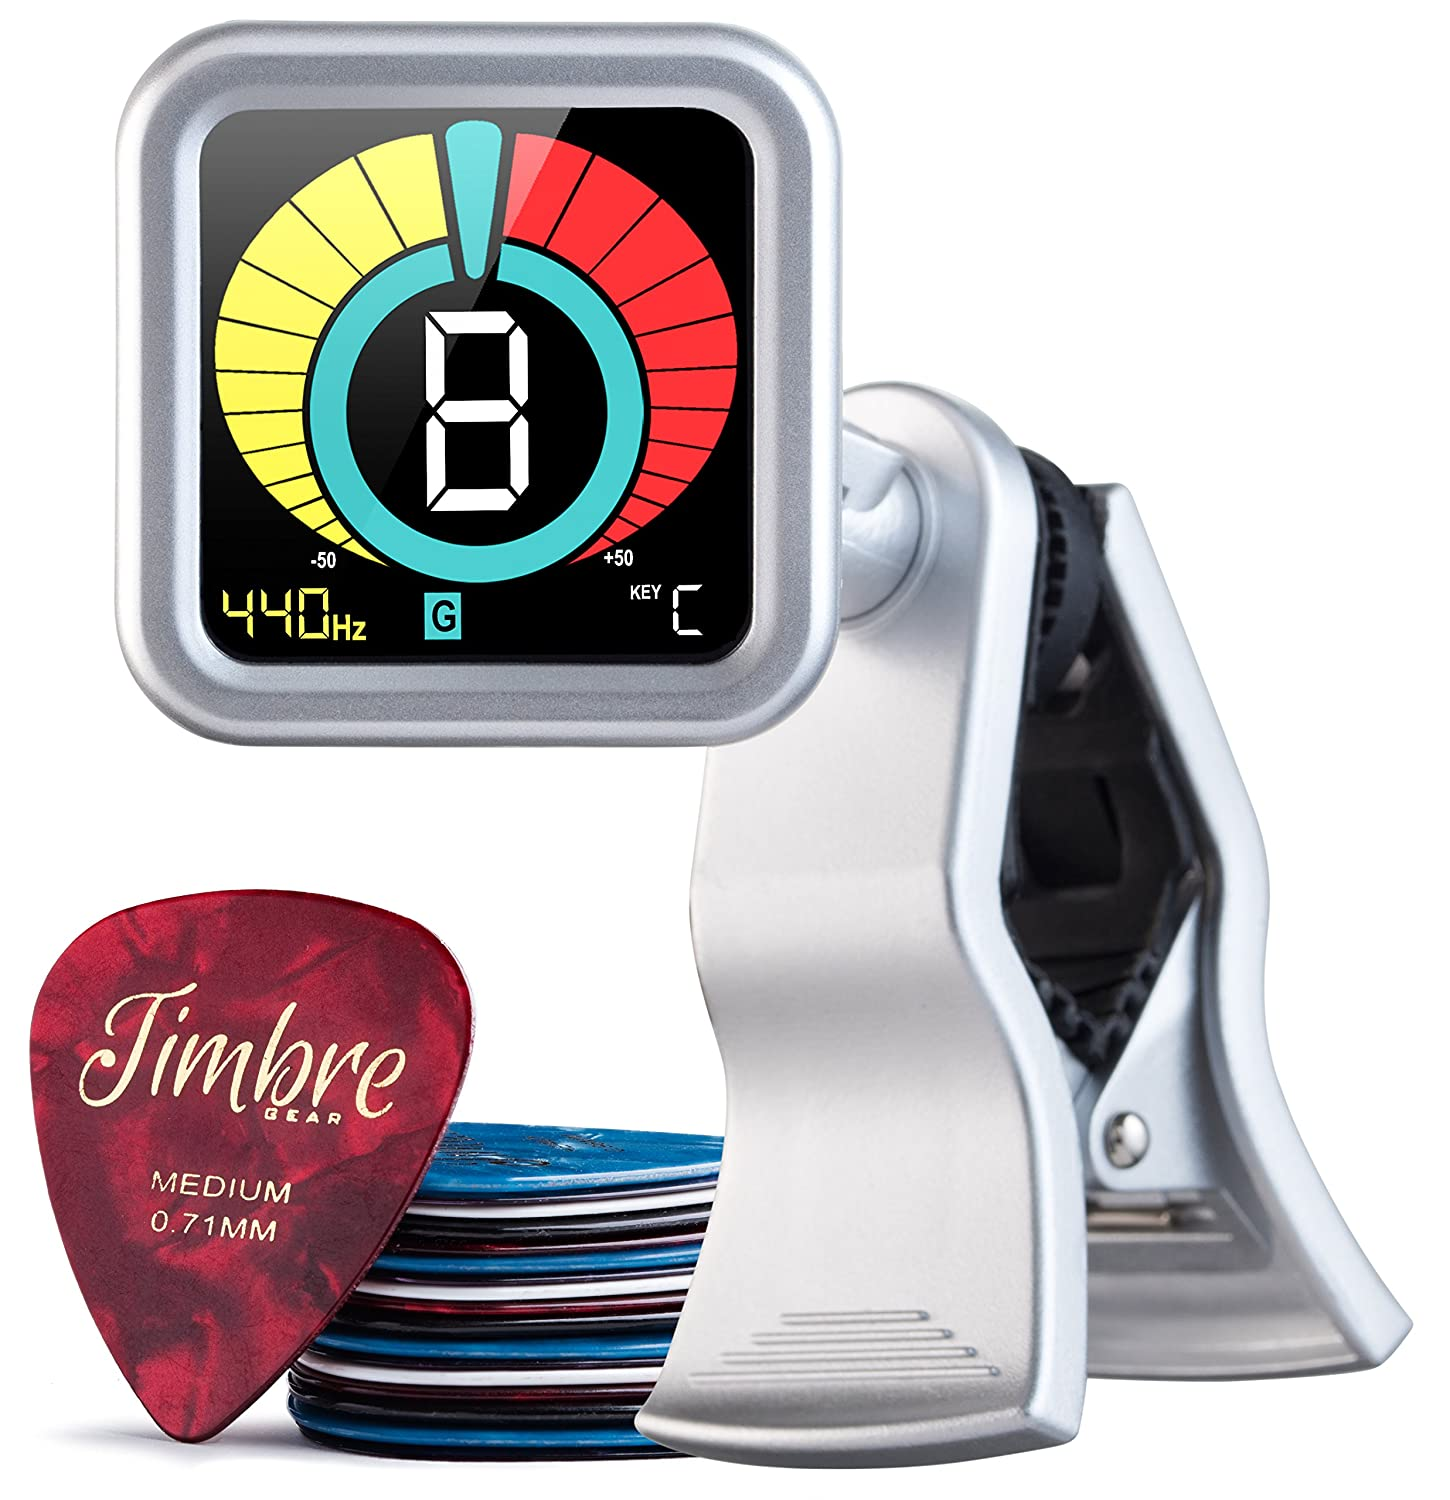 TimbreGear Chromatic Clip-On Tuner Guitar Tuner For - Acoustic Guitar, Electric Guitar, Bass Guitar, Ukulele, Violin, Premium Picks Sampler 20 Pack In Thin, Medium & Heavy Gauges (Pitch Black) TRGG1BLK2000